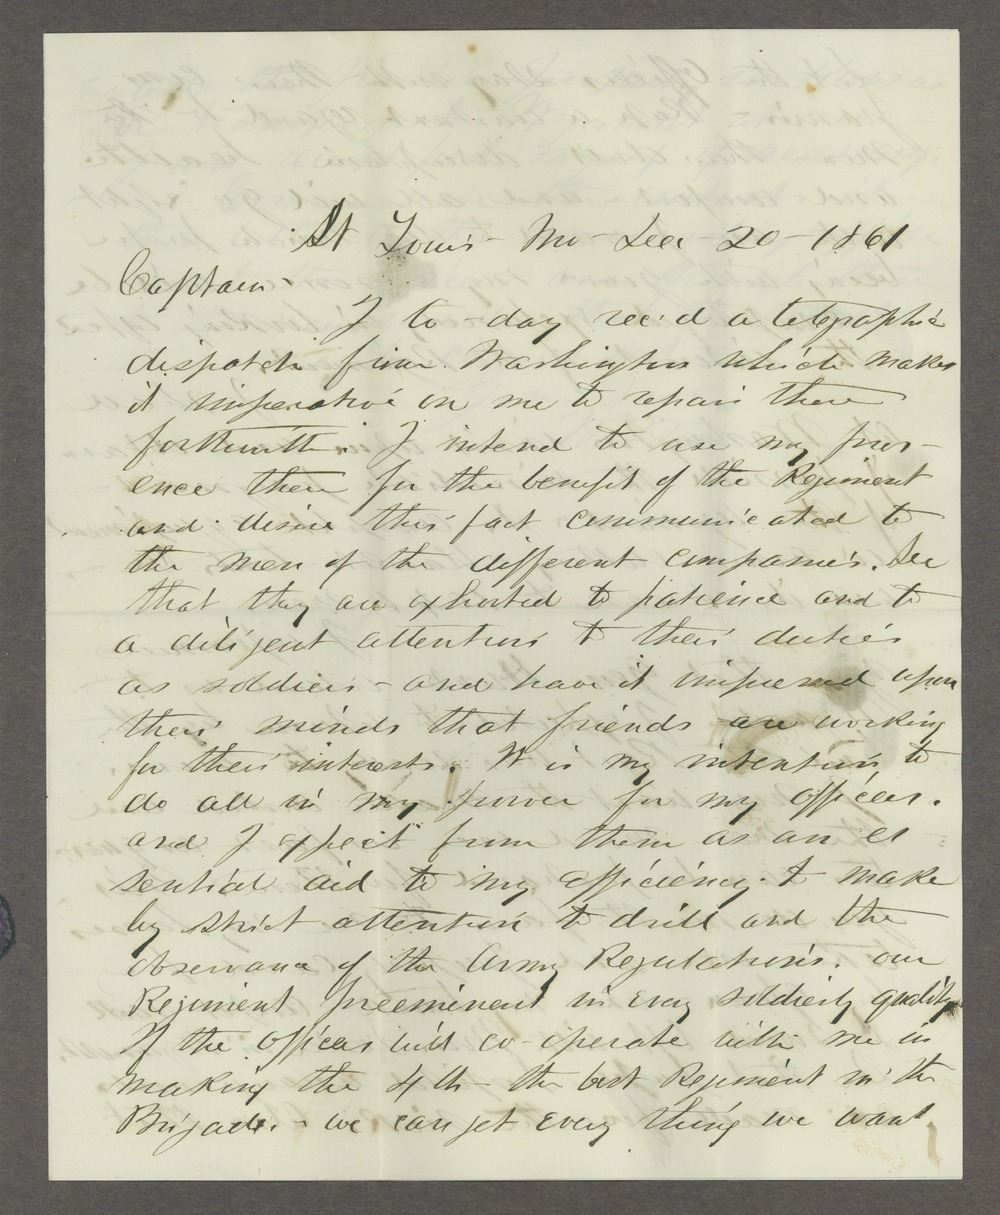 James Madison Harvey correspondence - 1 [Box 1 Folder 2]